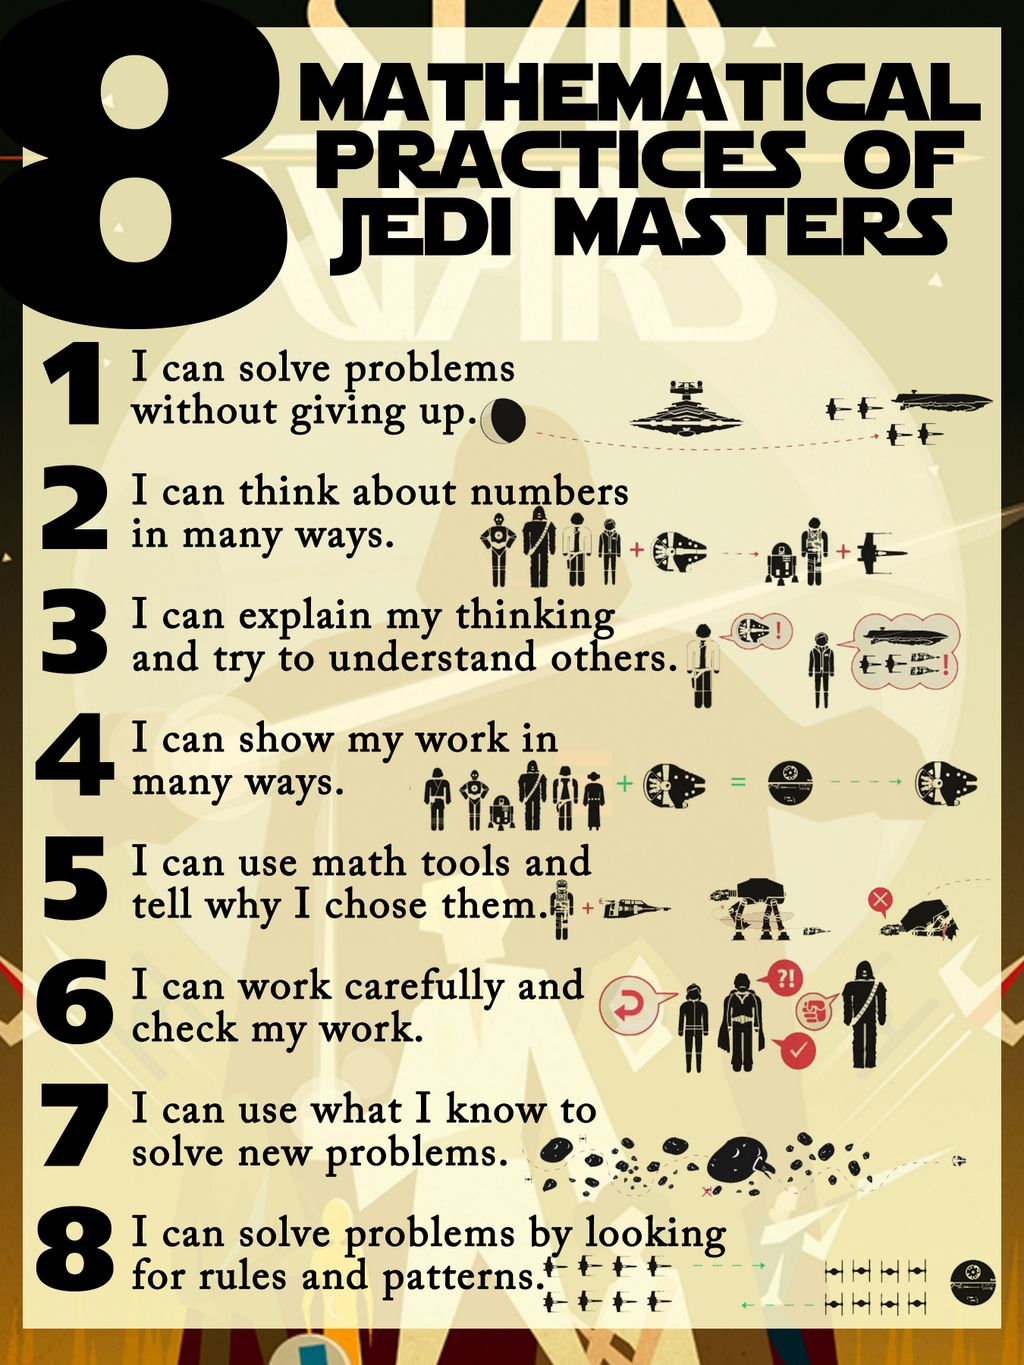 8 mathematical practices of Jedi masters | Math ideas | Pinterest ...